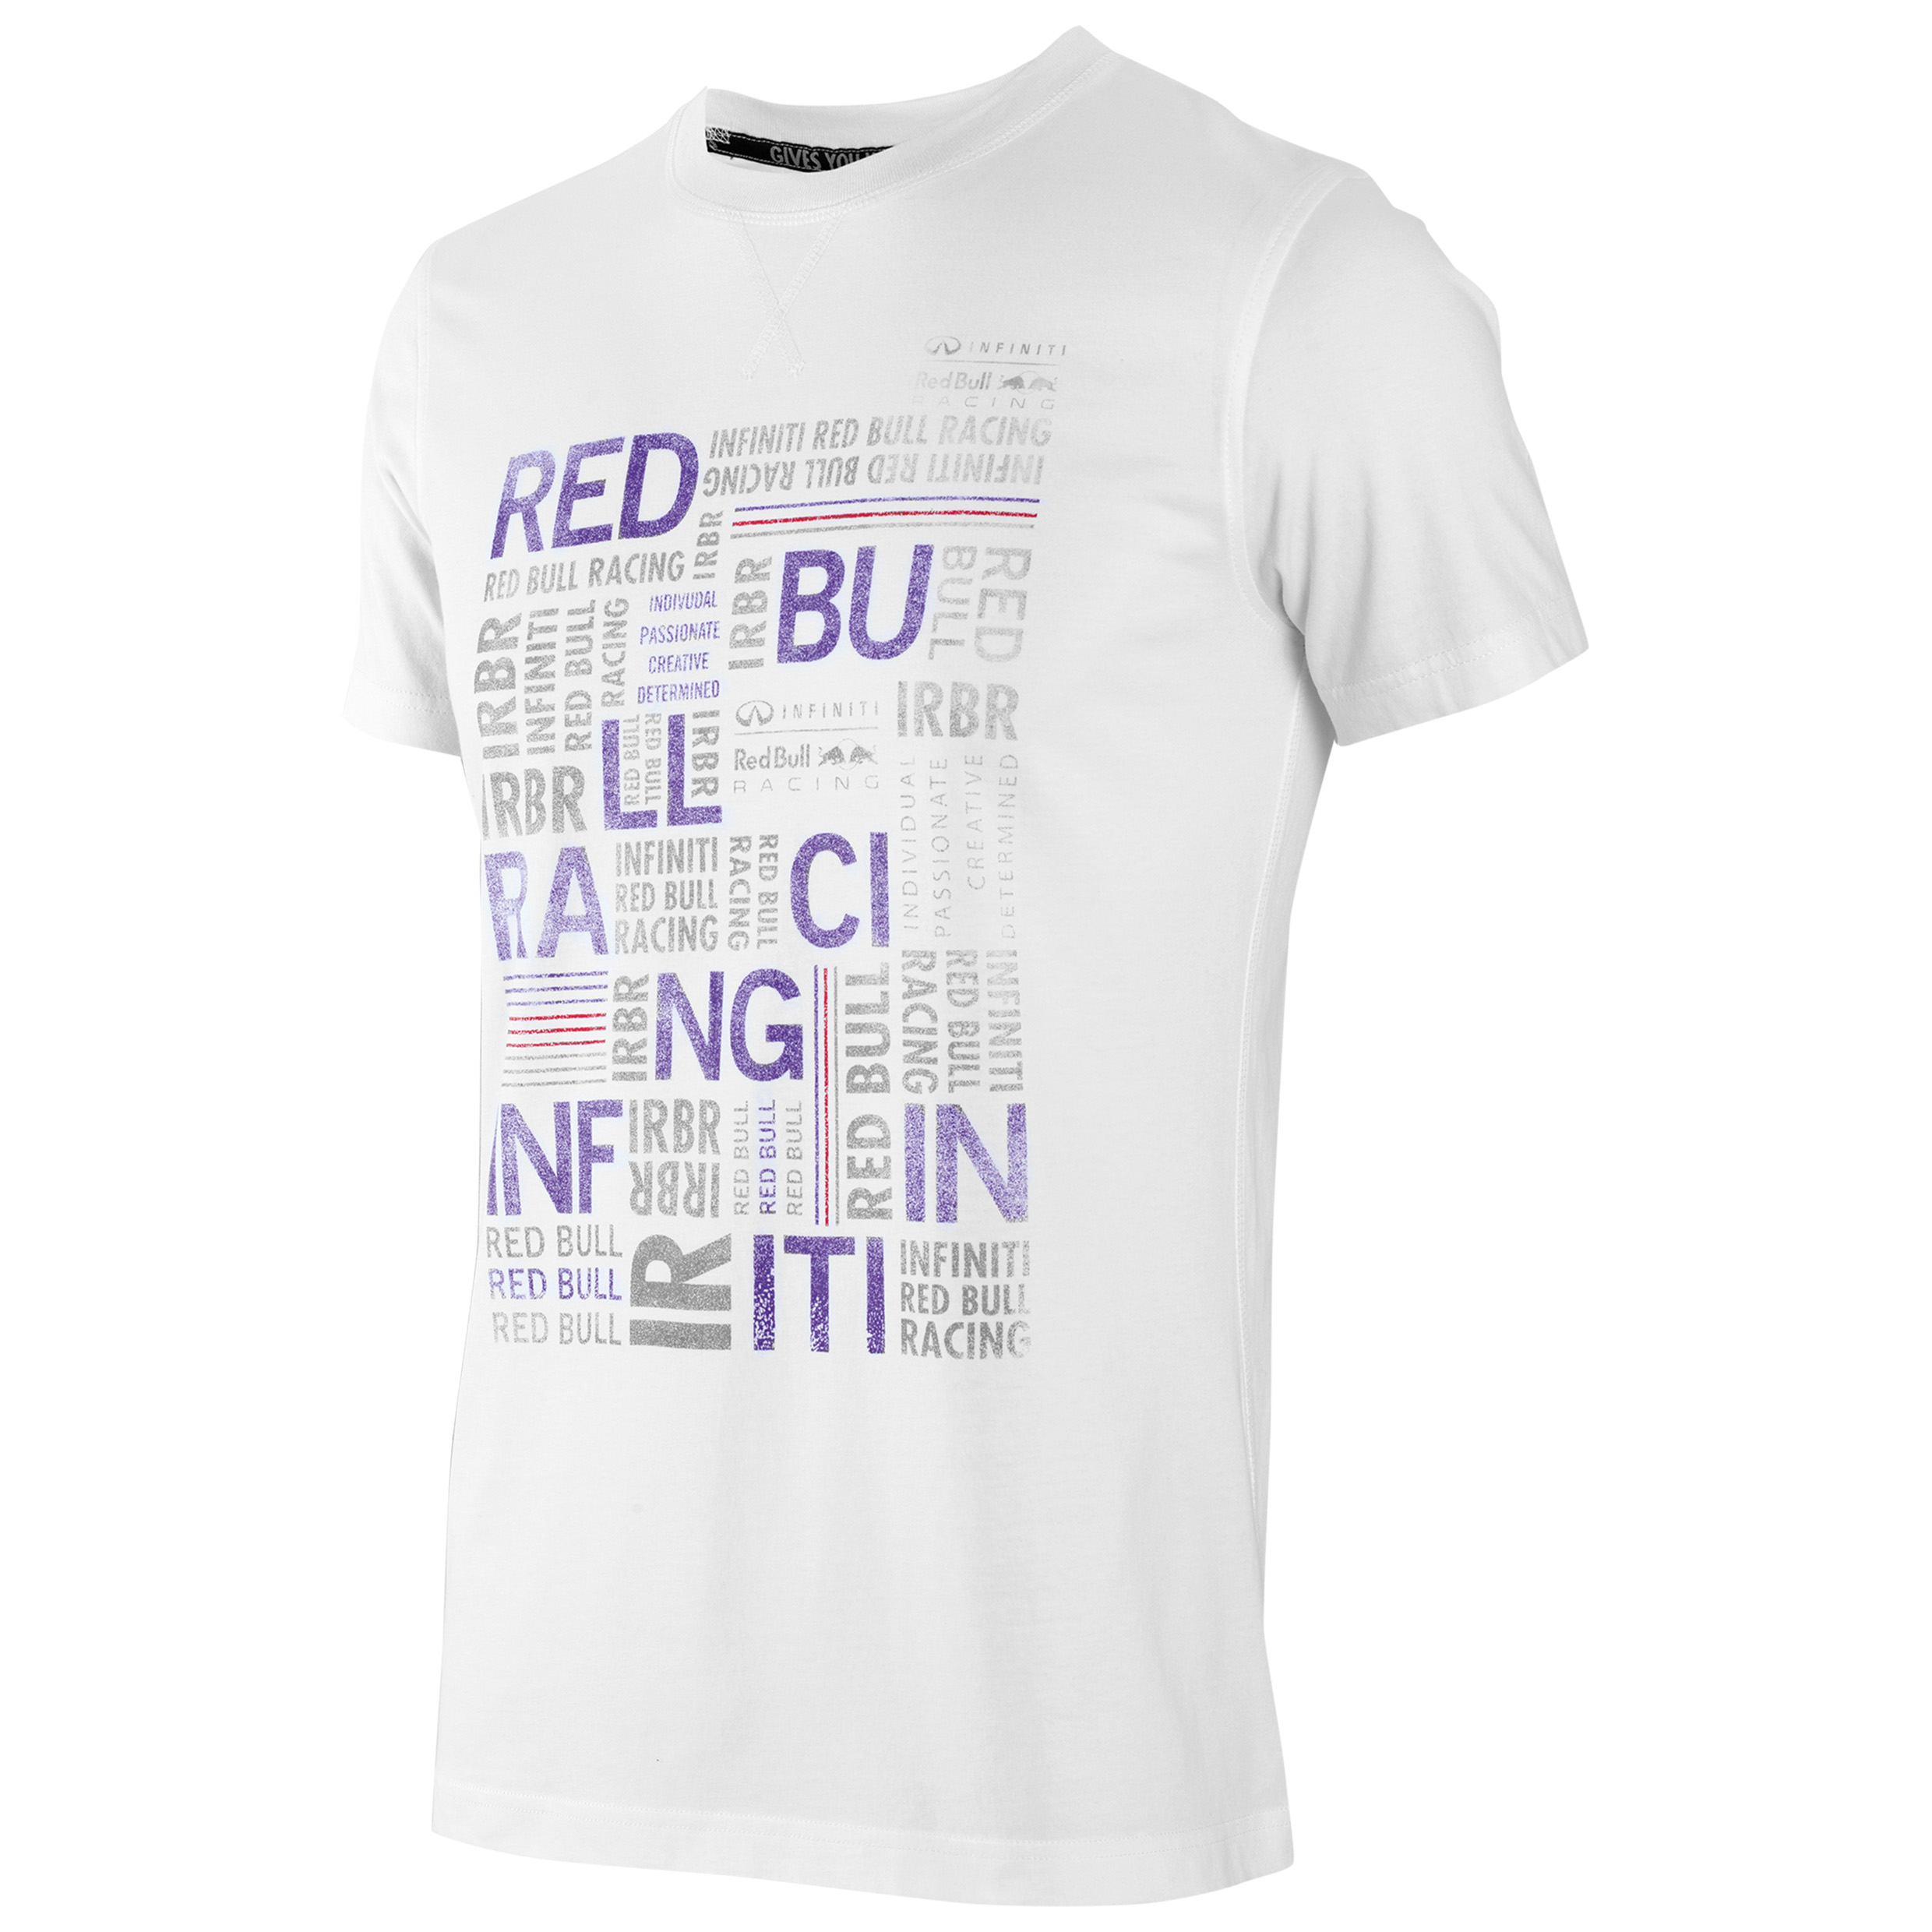 Infiniti Red Bull Racing T-Shirt